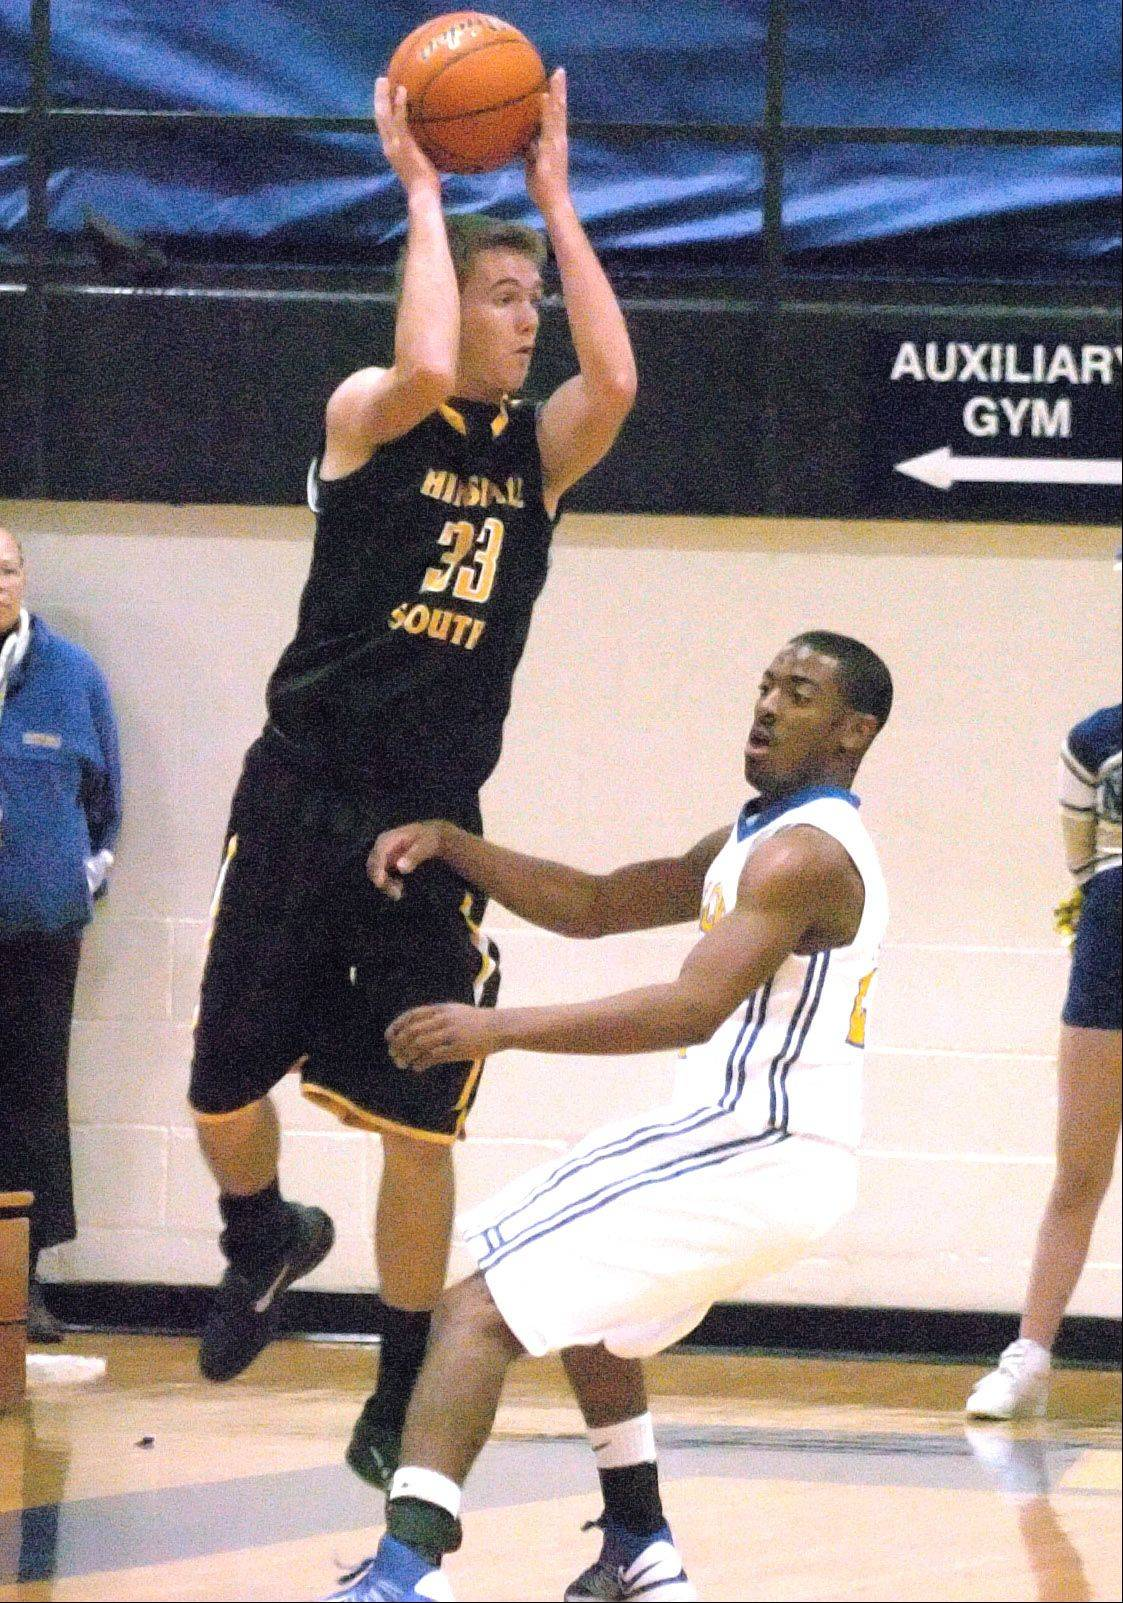 Justin Ward of Hinsdale South looks to pass over Jaylen Howze of Wheaton North.